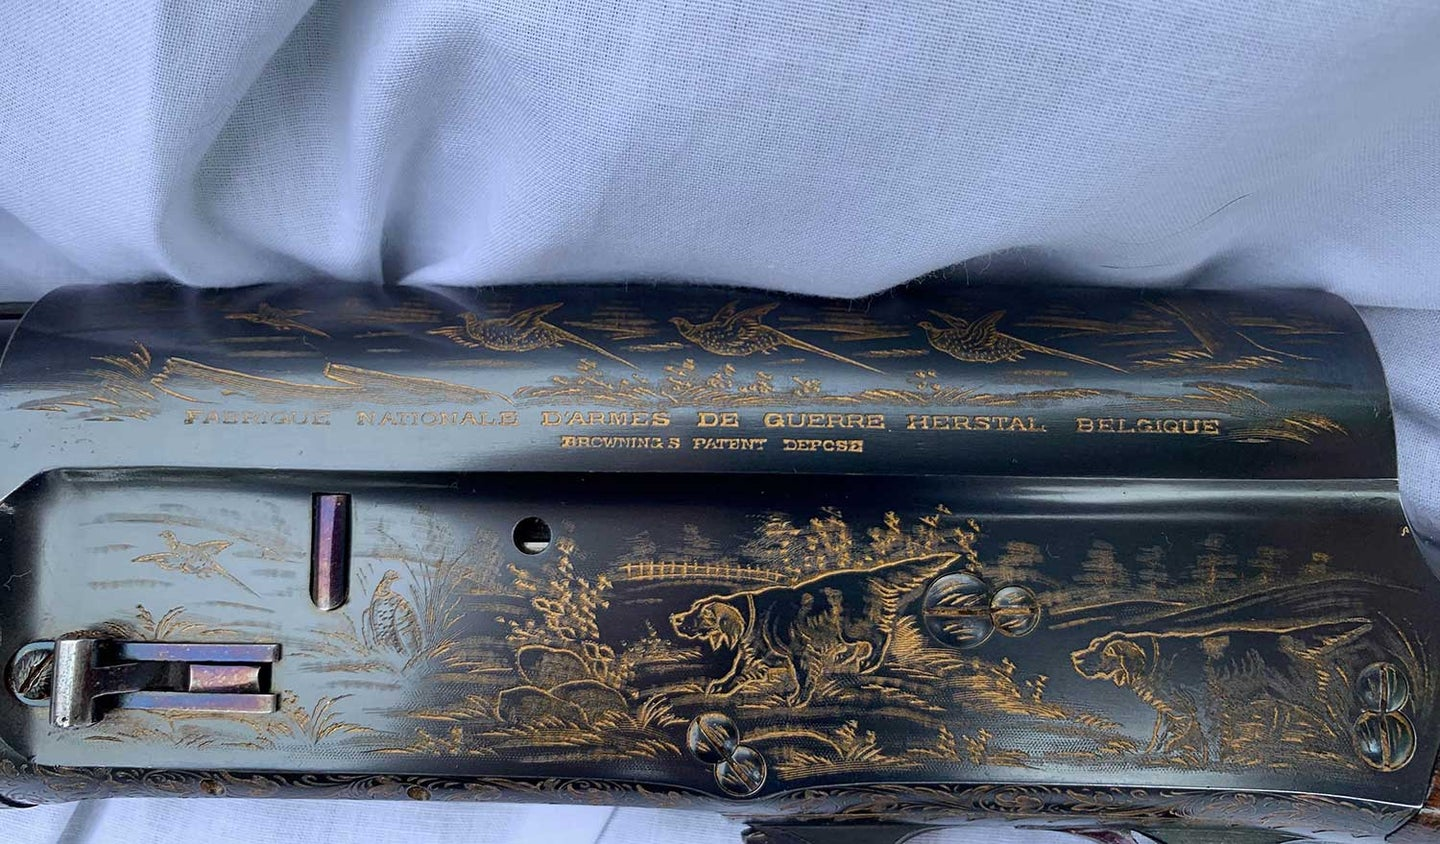 Detail of engraving on Browning Auto 5